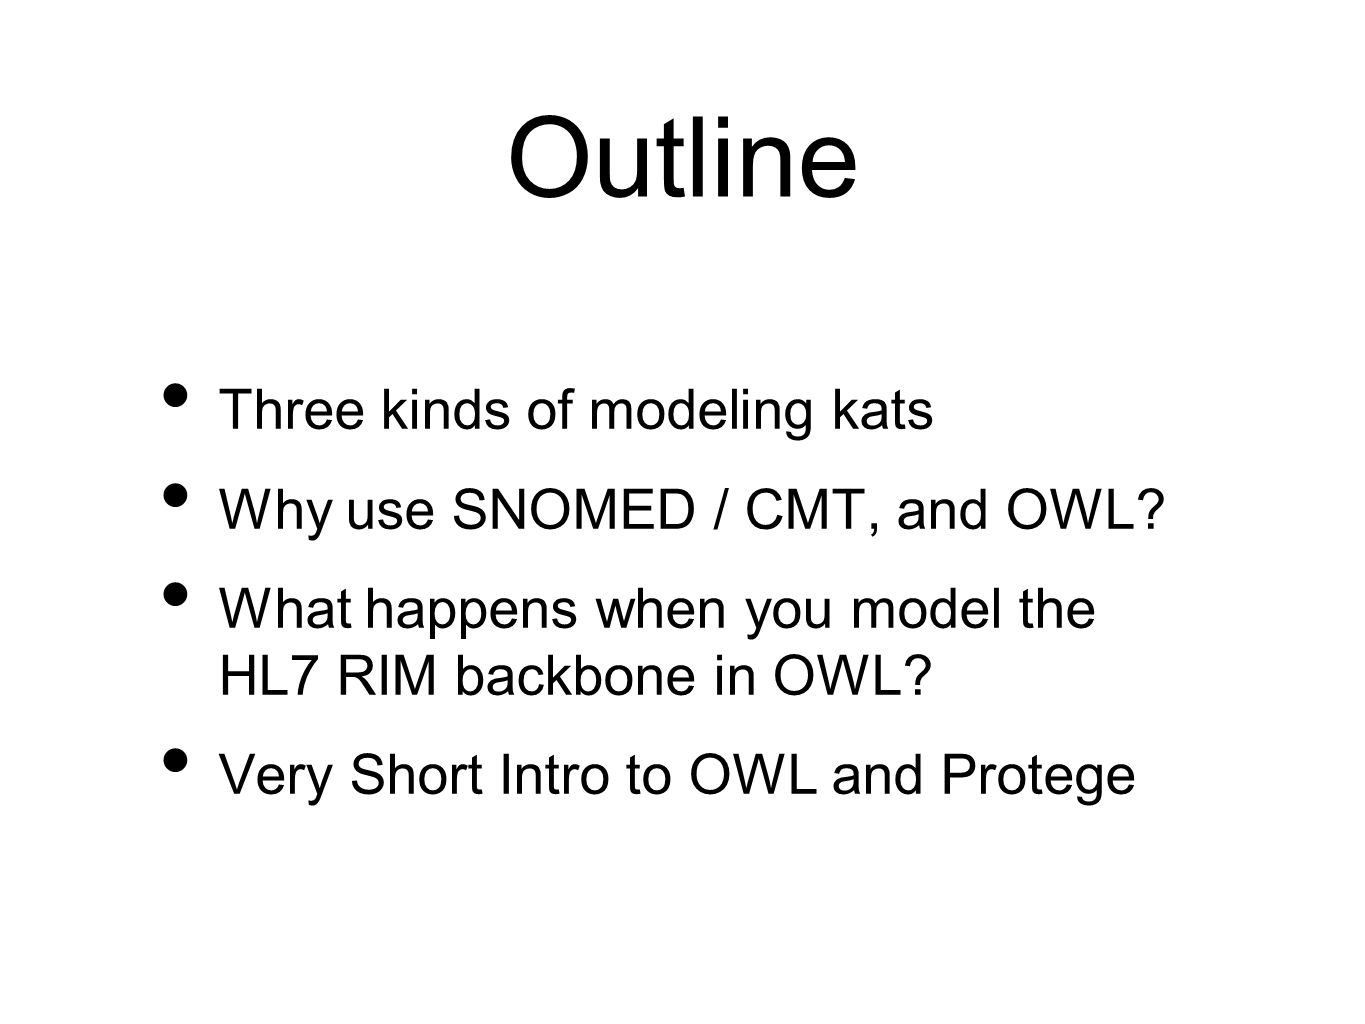 Outline Three kinds of modeling kats Why use SNOMED / CMT, and OWL